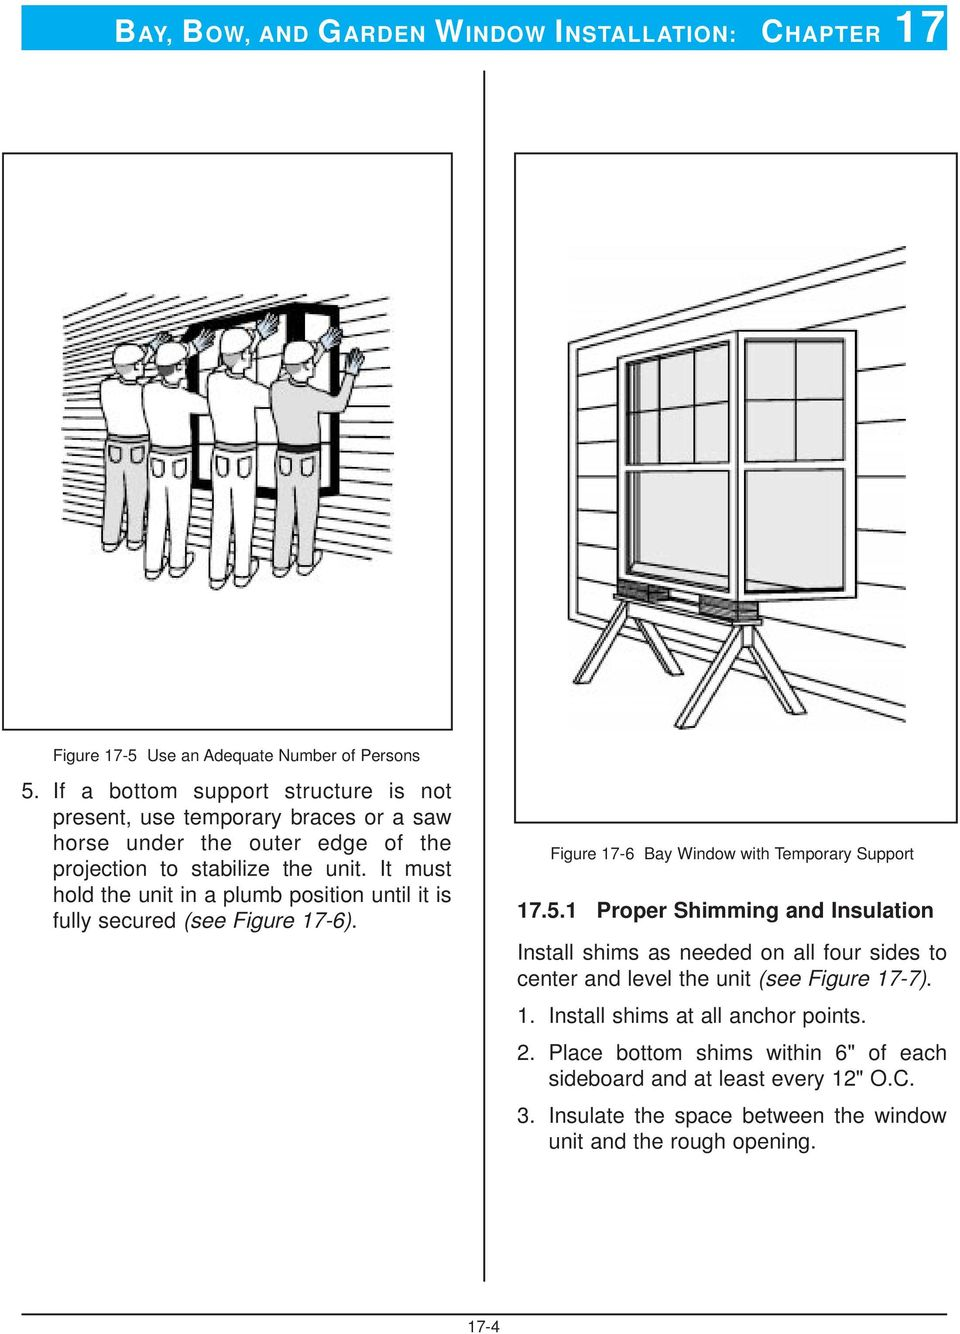 It must hold the unit in a plumb position until it is fully secured (see Figure 17-6). Figure 17-6 Bay Window with Temporary Support 17.5.